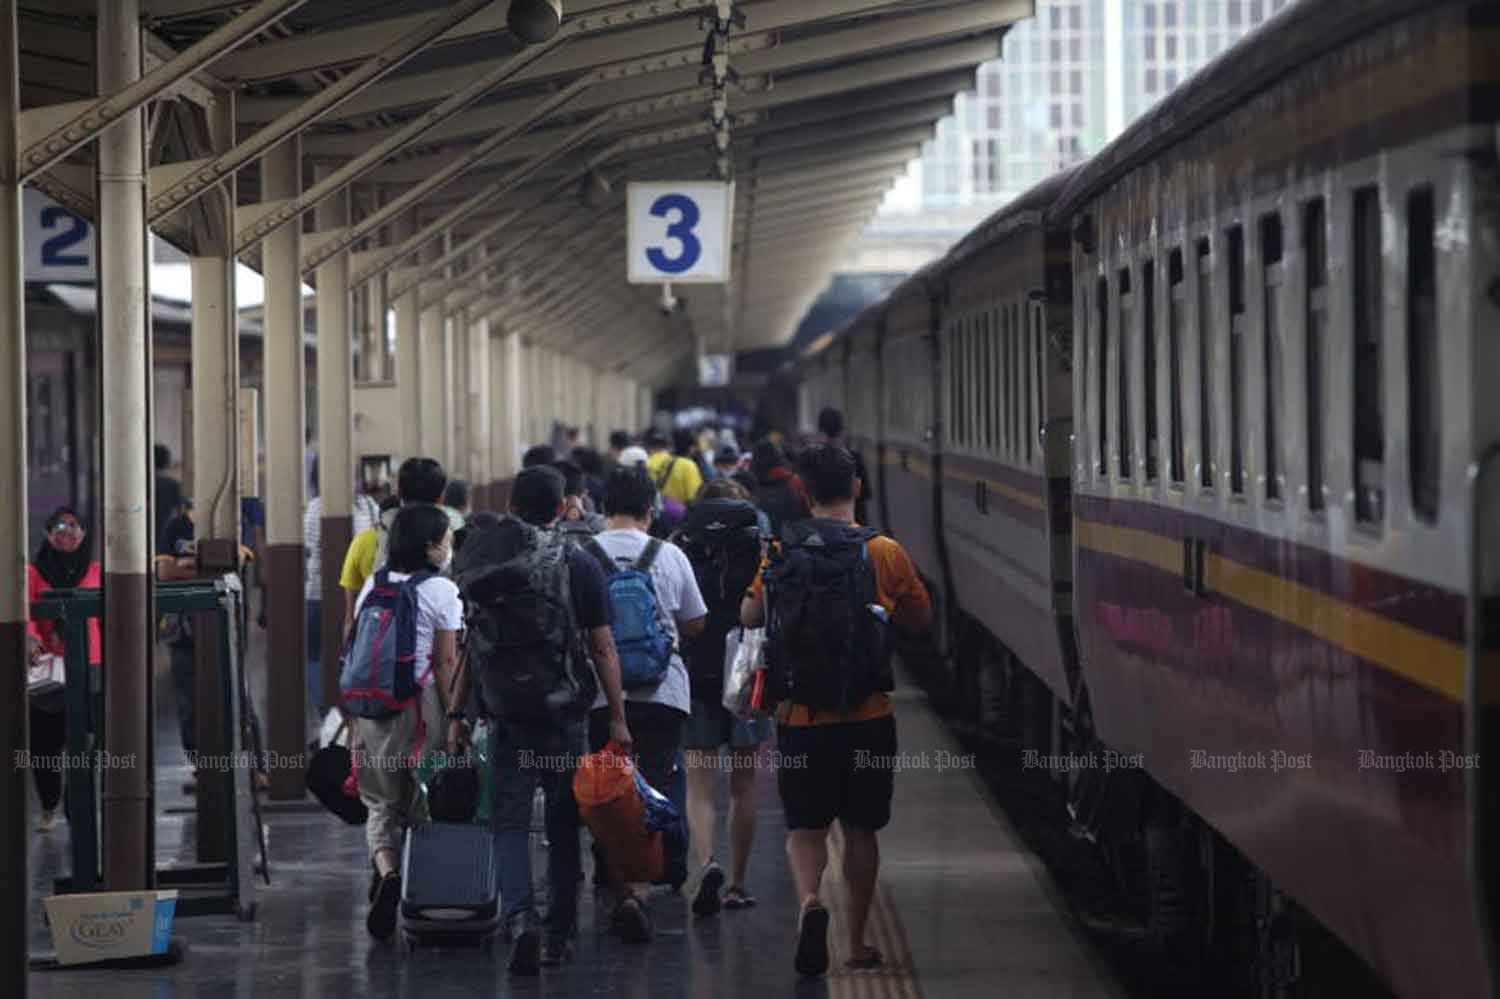 Travellers return to Bangkok at Hua Lampong railway station at the end of the long-weekend holiday early this month. (Bangkok Post file photo)